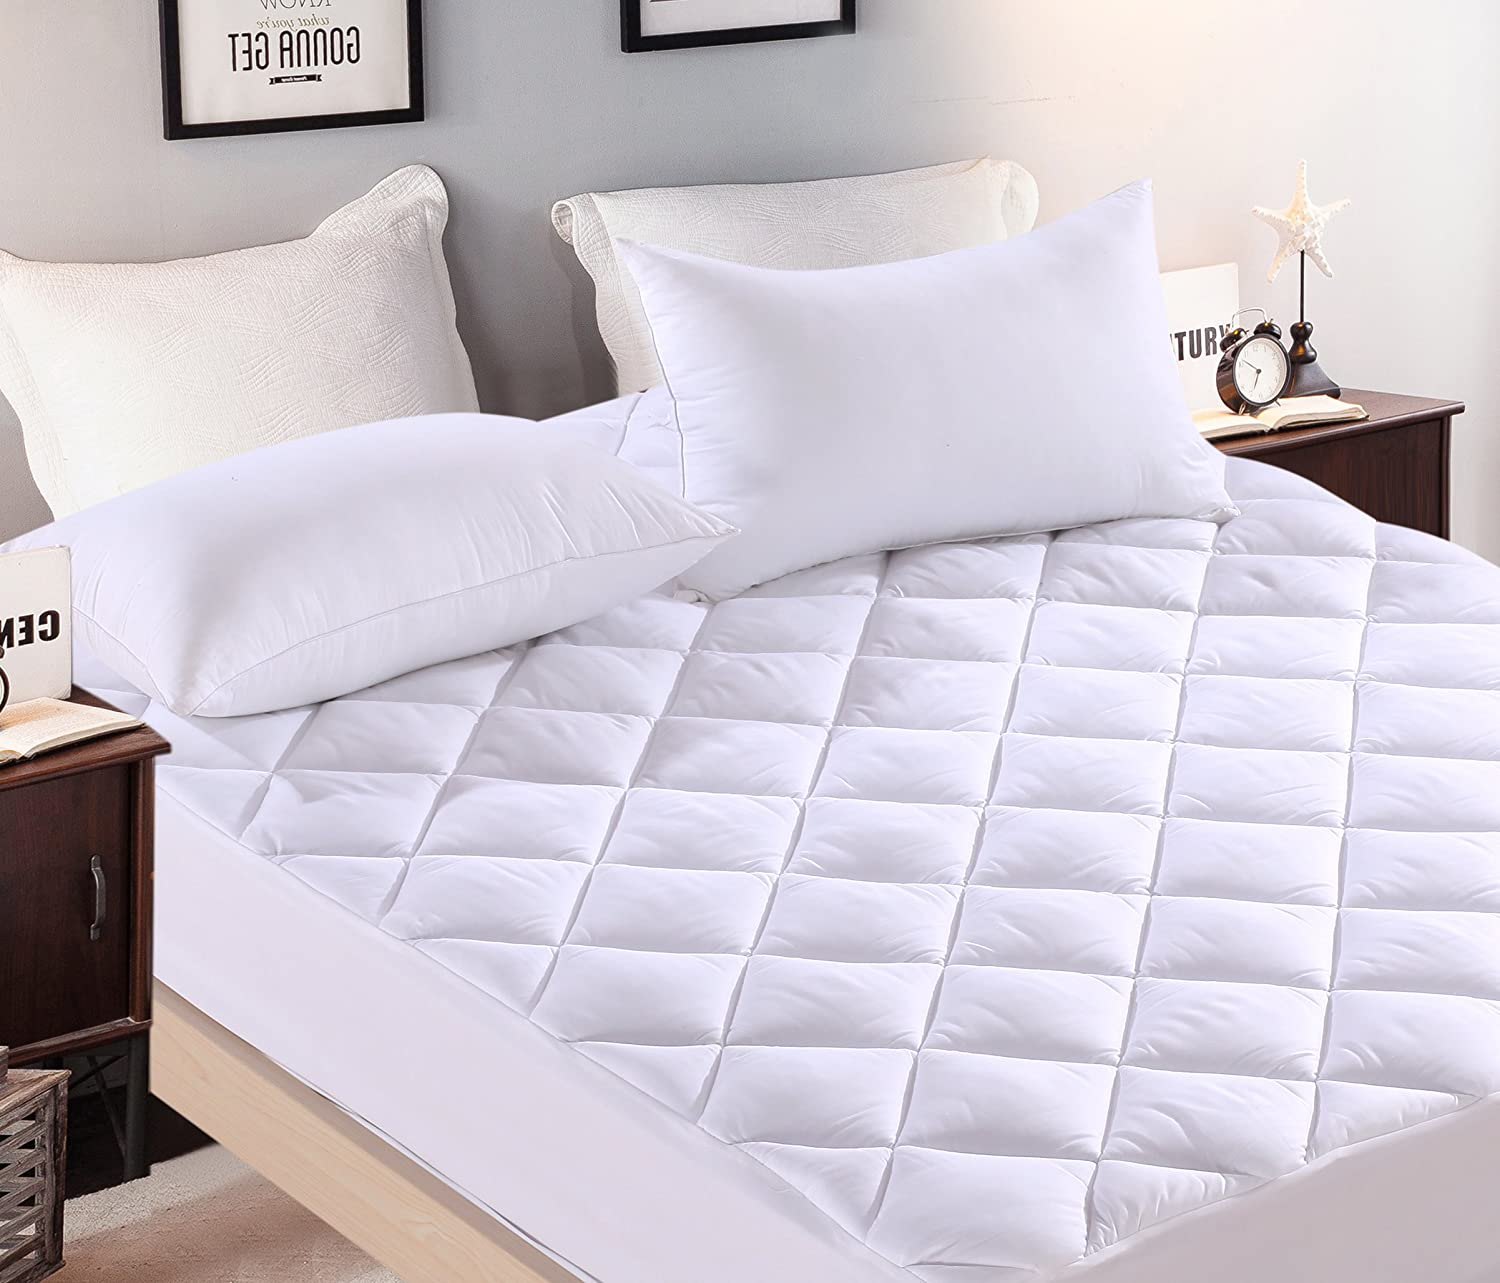 Extra Thick Mattress Pad Queen Size 60 inch 18 Depth Latest item OFFicial site Br by 80